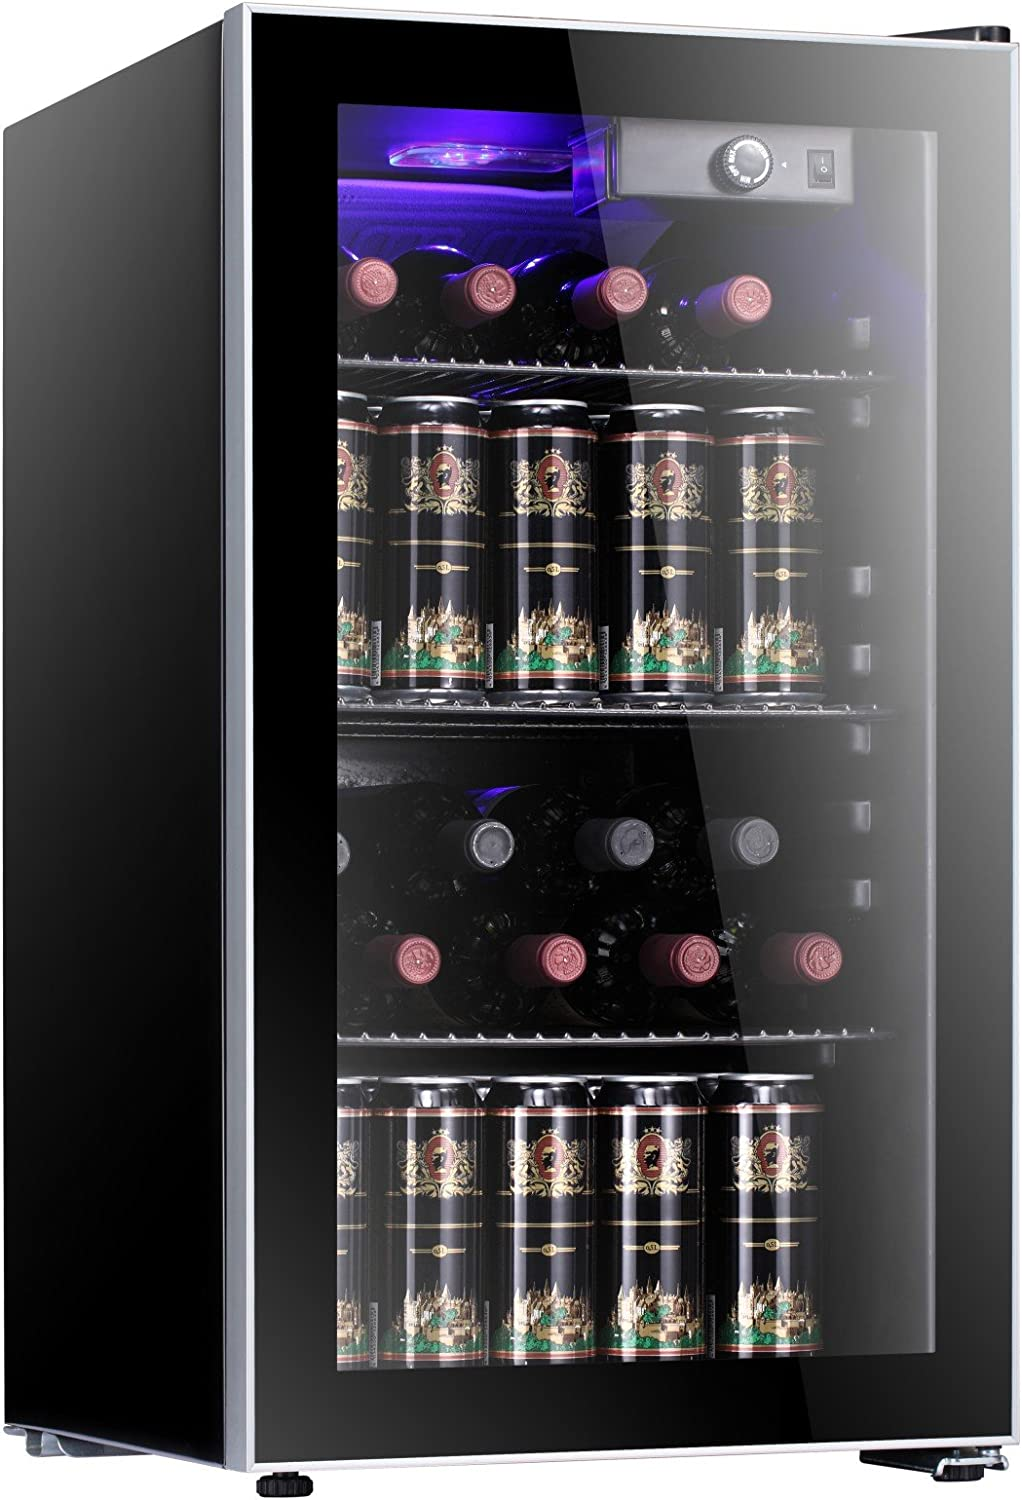 Antarctic Star 26 Bottle Wine Cooler Cabinet BeverageRefrigerator Small Mini Red White Wine Cellar Beer Soda Counter Top Bar Fridge Quiet Operation Compressor Adjust Temperature Freestanding Black